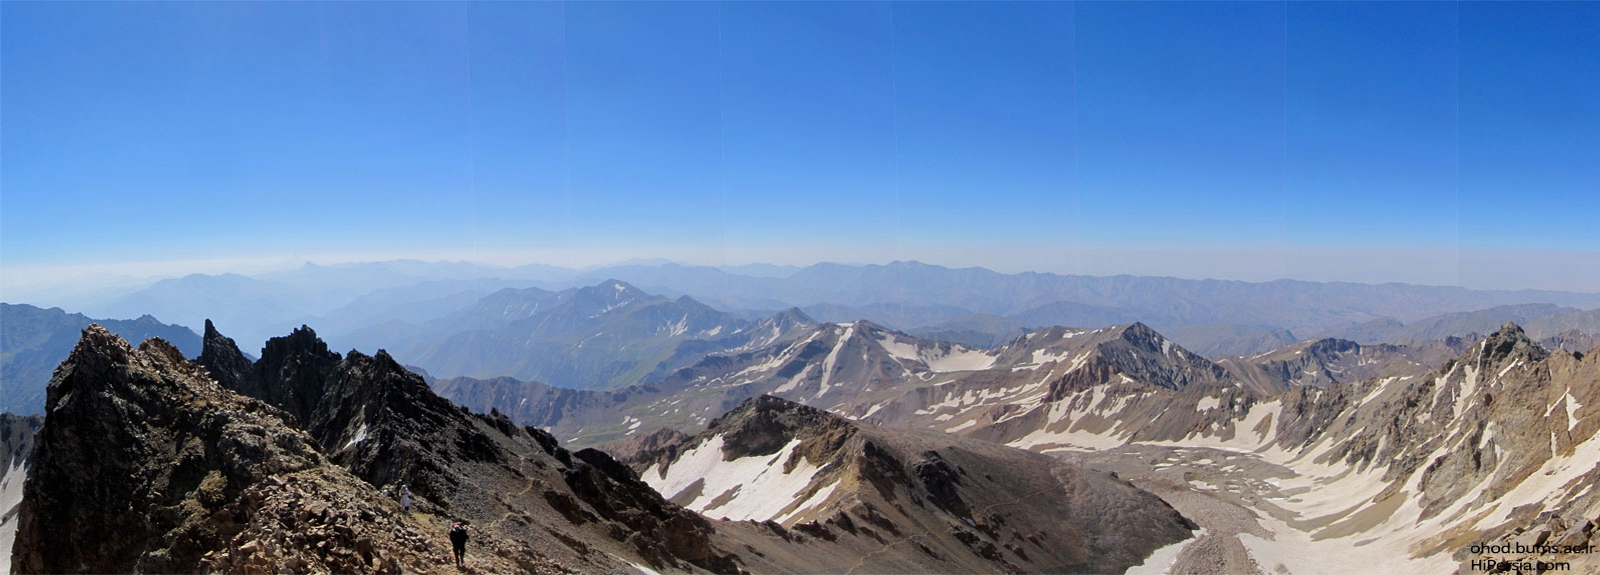 Hiking on Iran's 3 Mountains Tour ( Alam_Kuh Mount, Damavand Mount, Sabalan Mount)